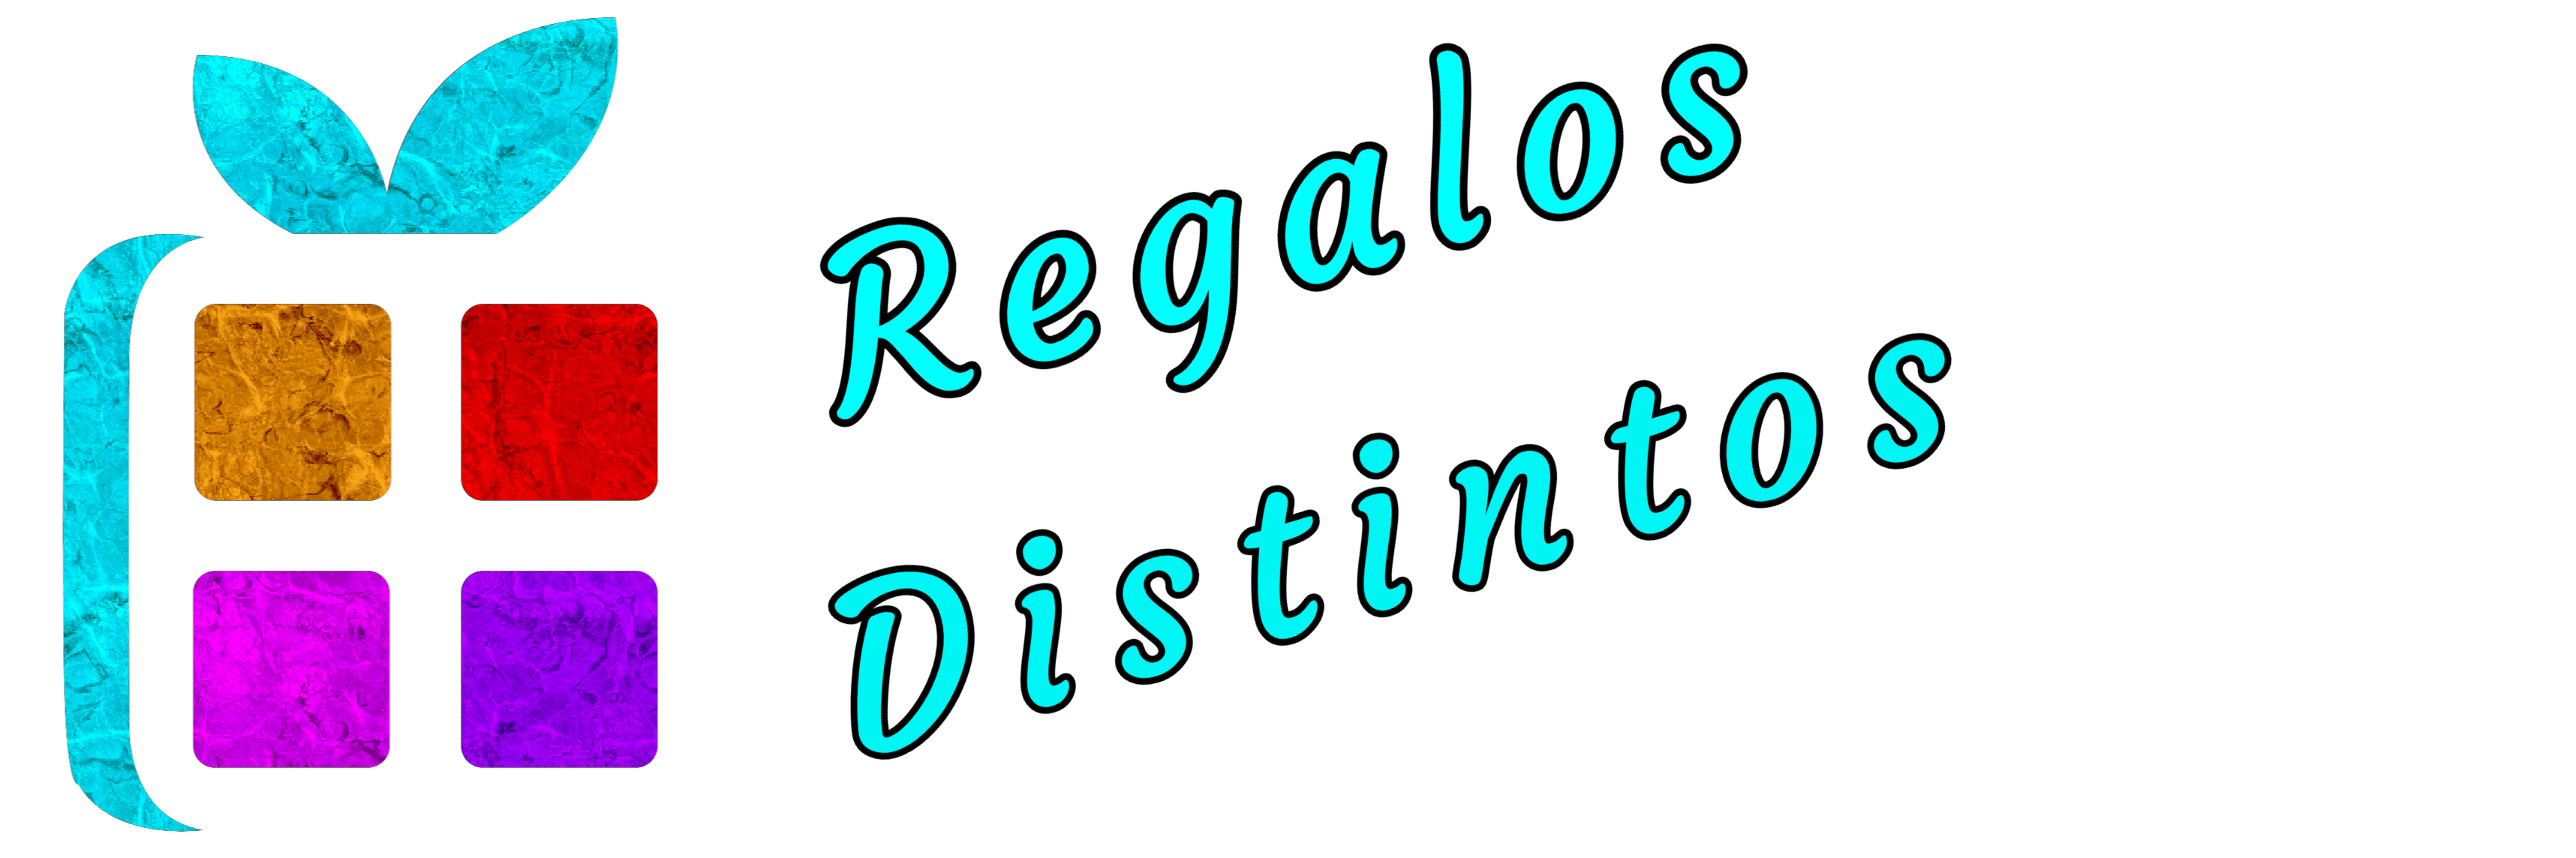 Regalos Distintos / Regalos Originales